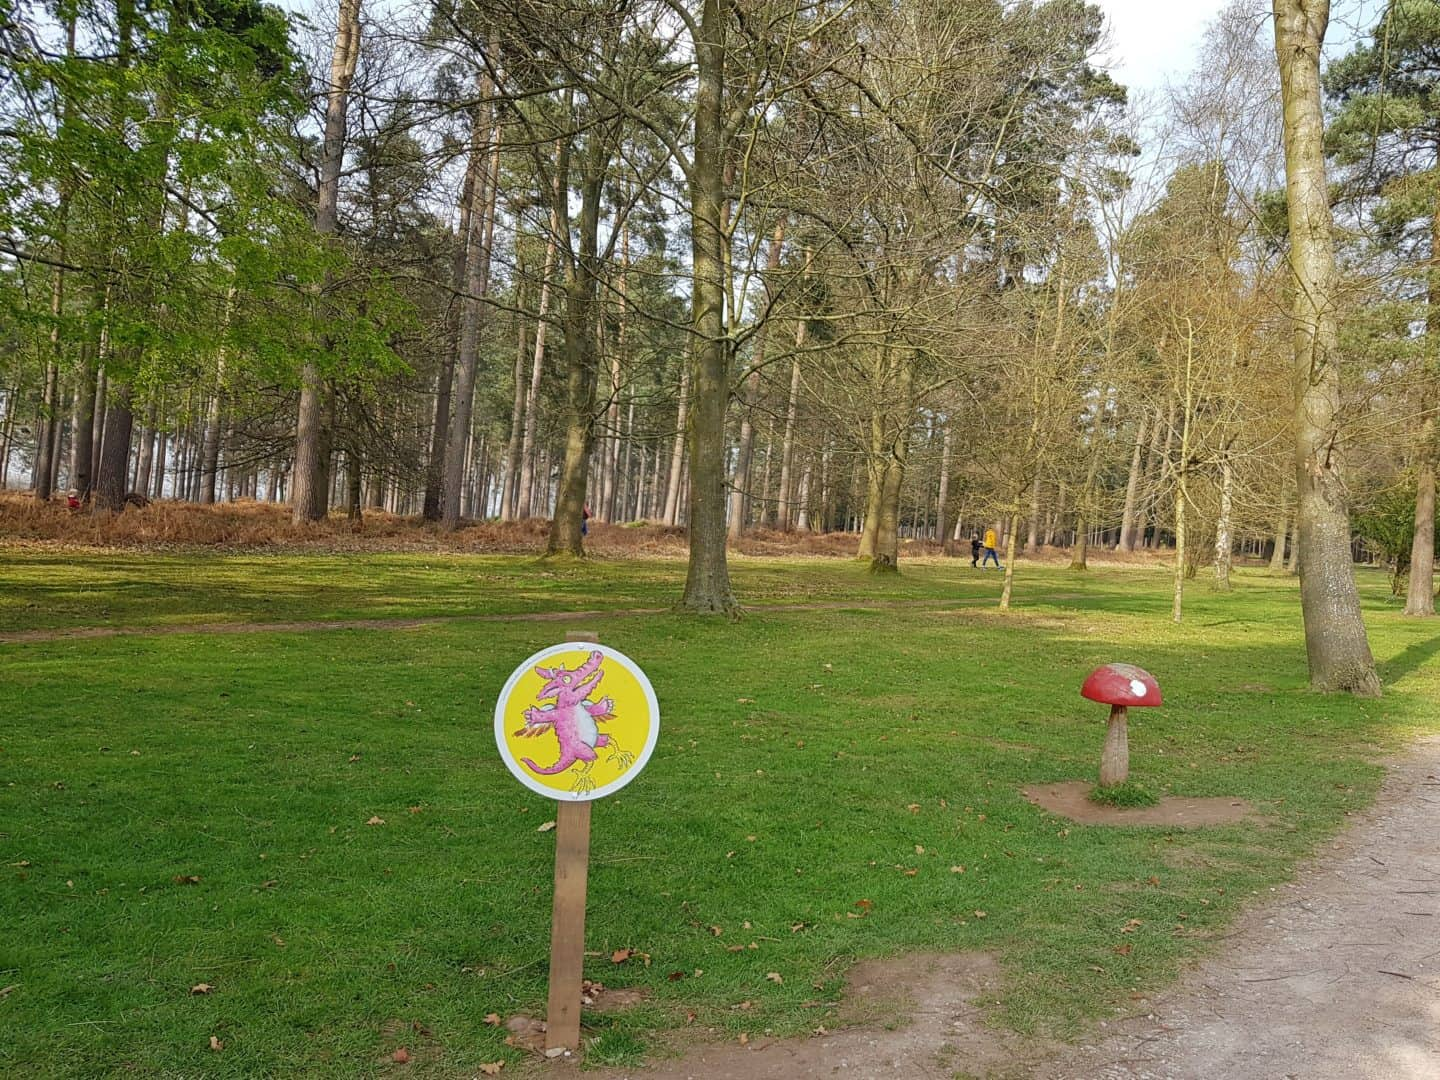 Zog activity trail in Cannock Chase Forest Staffordshire West Midlands